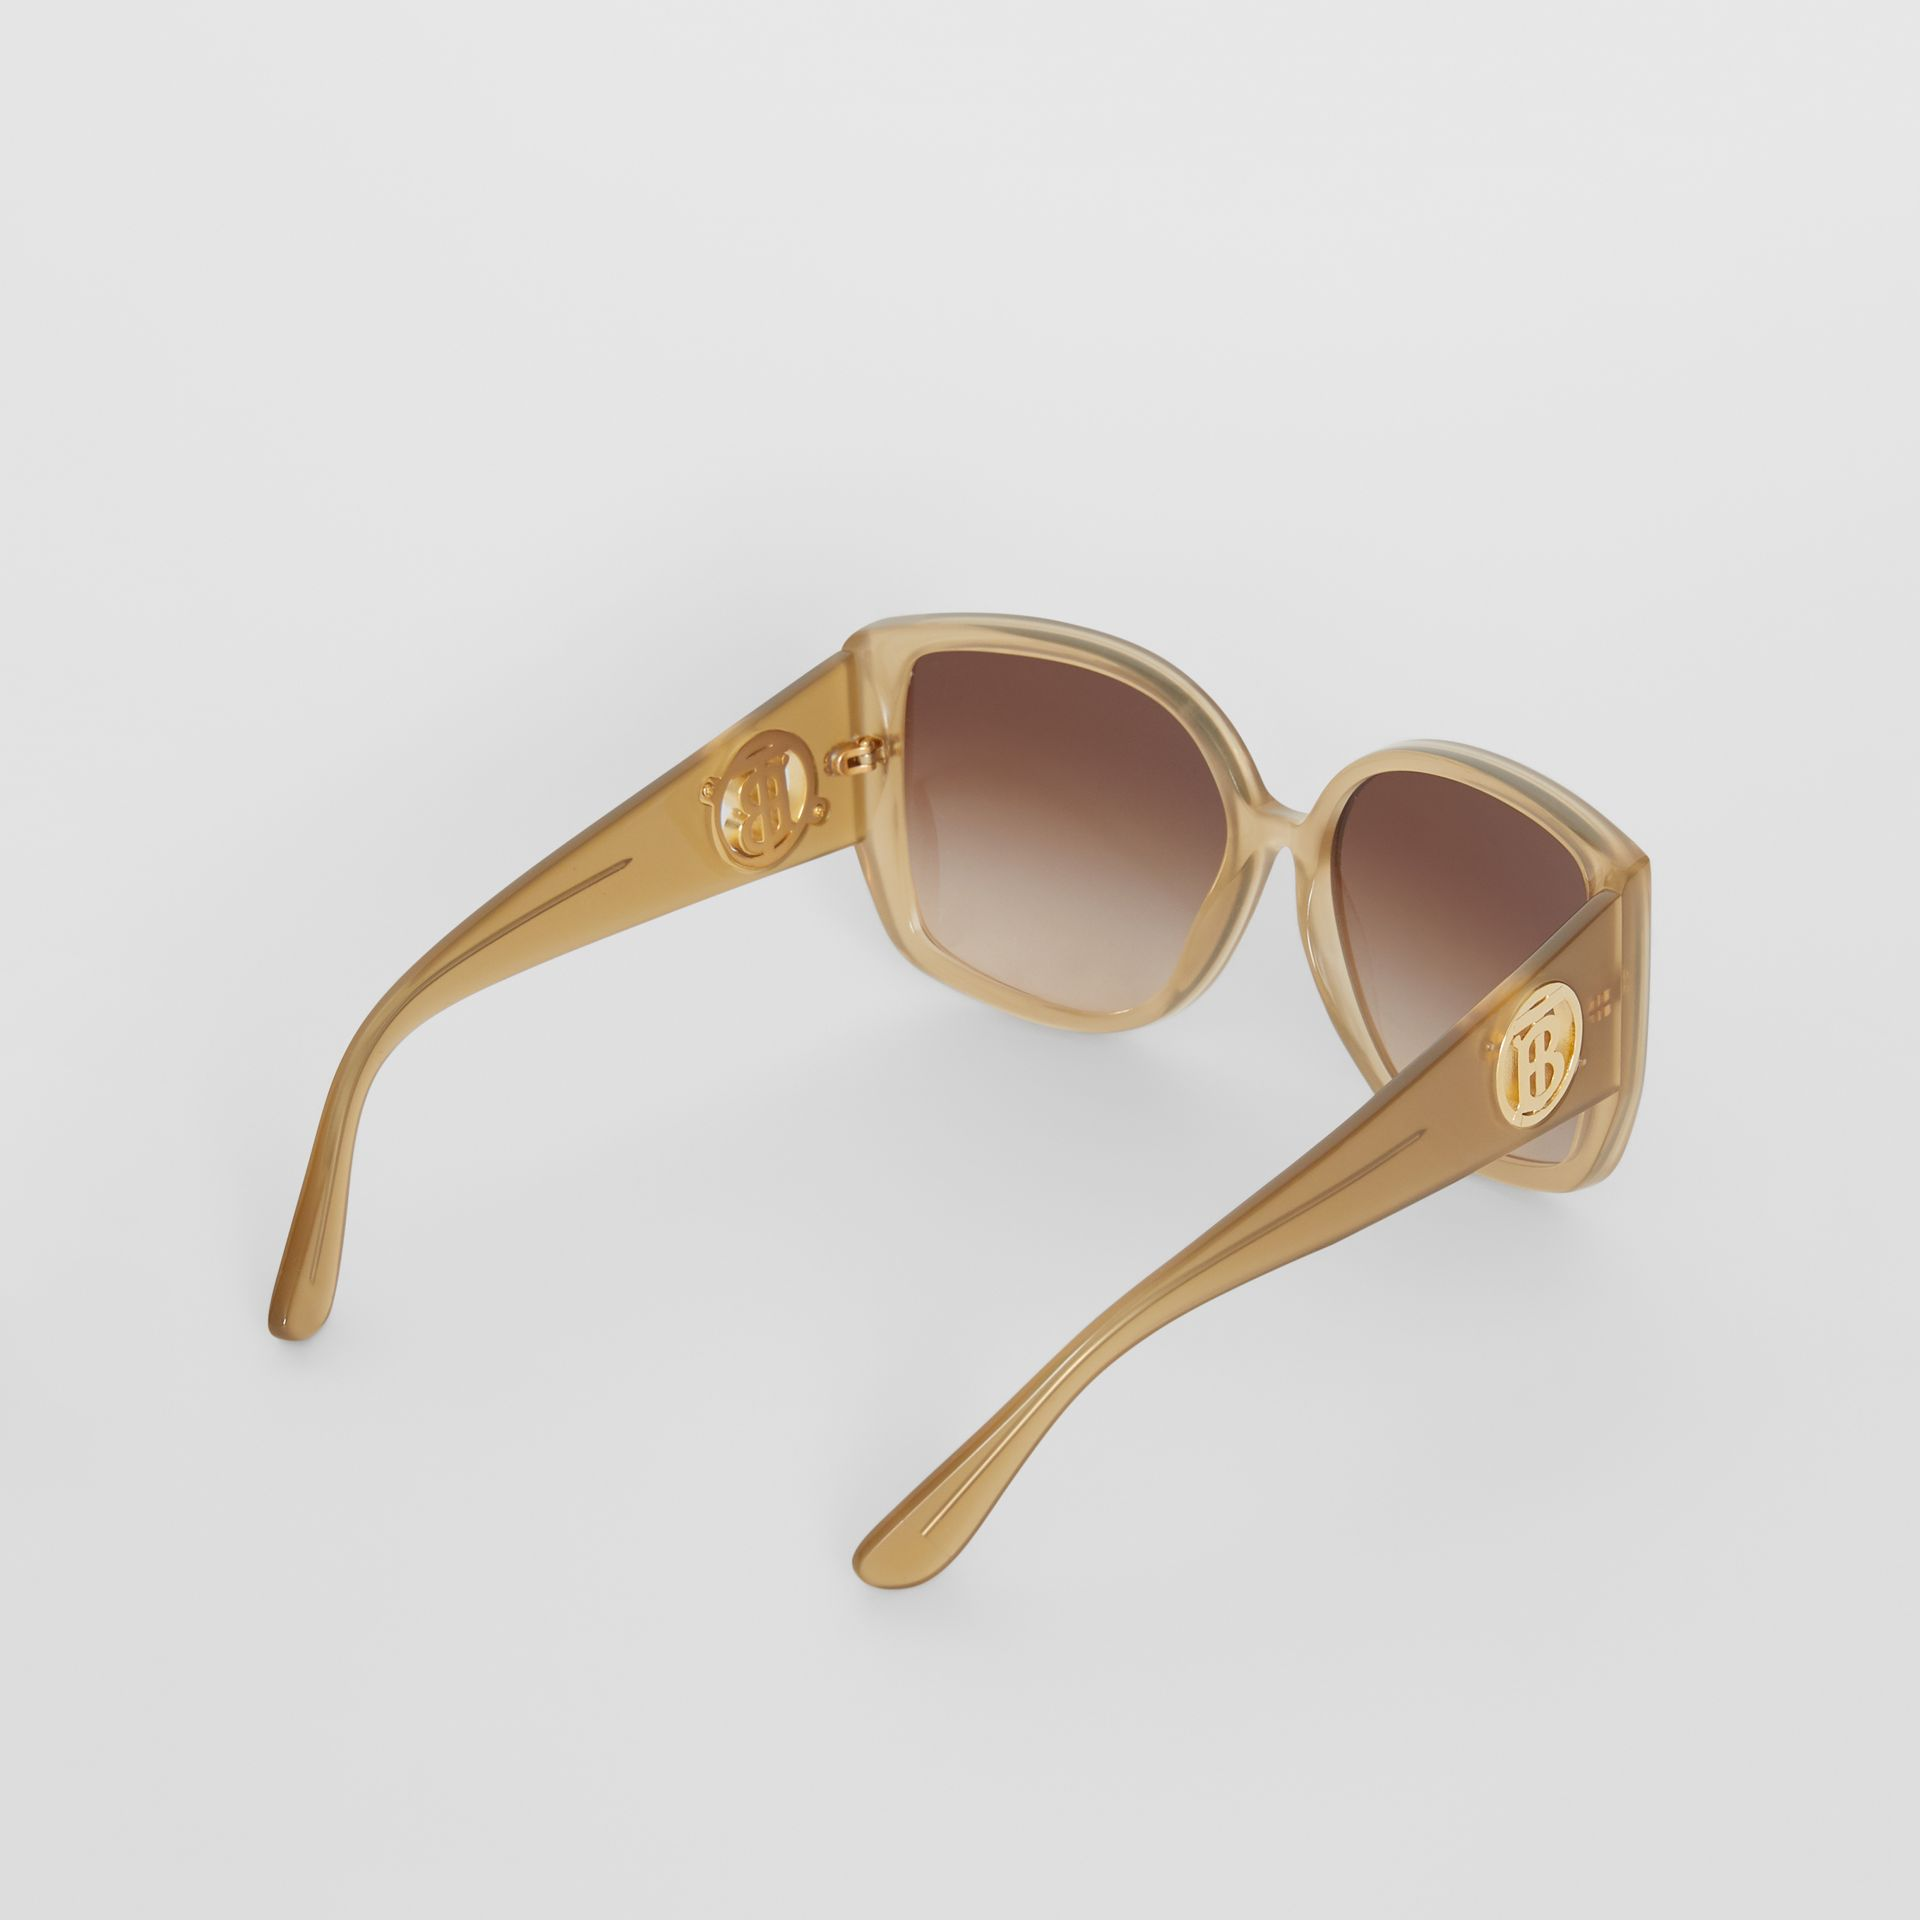 Oversized Butterfly Frame Sunglasses in Beige - Women | Burberry Australia - gallery image 4